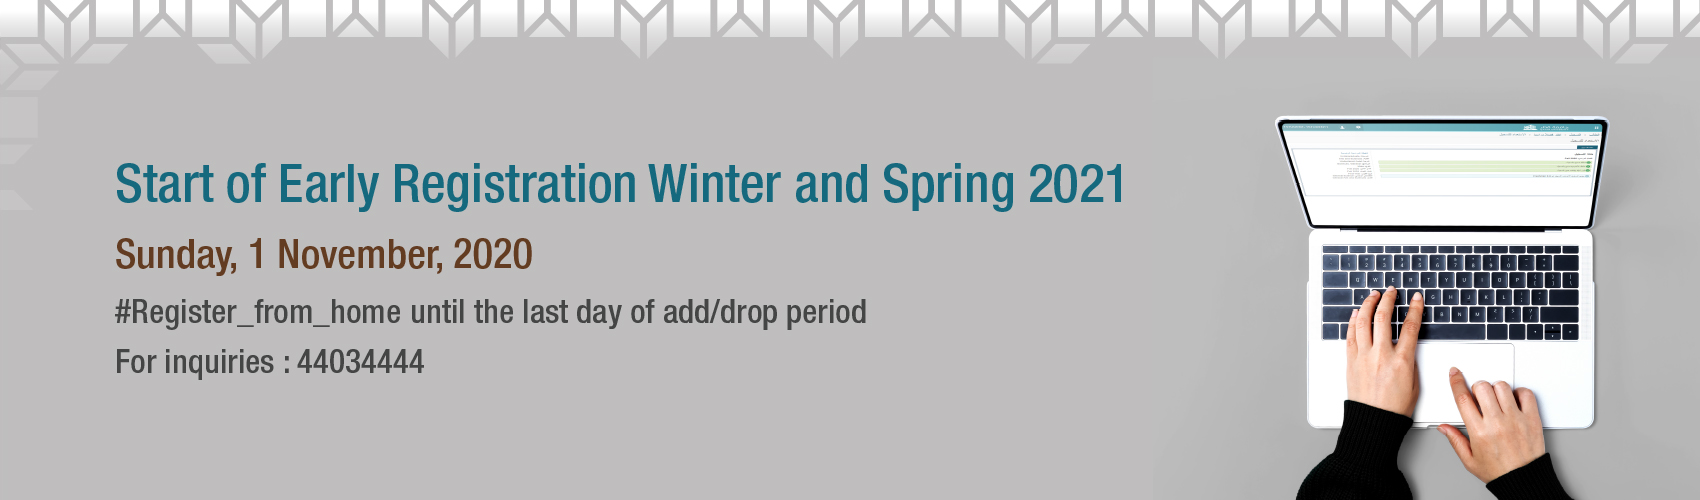 start of early registration winter and spring 2021